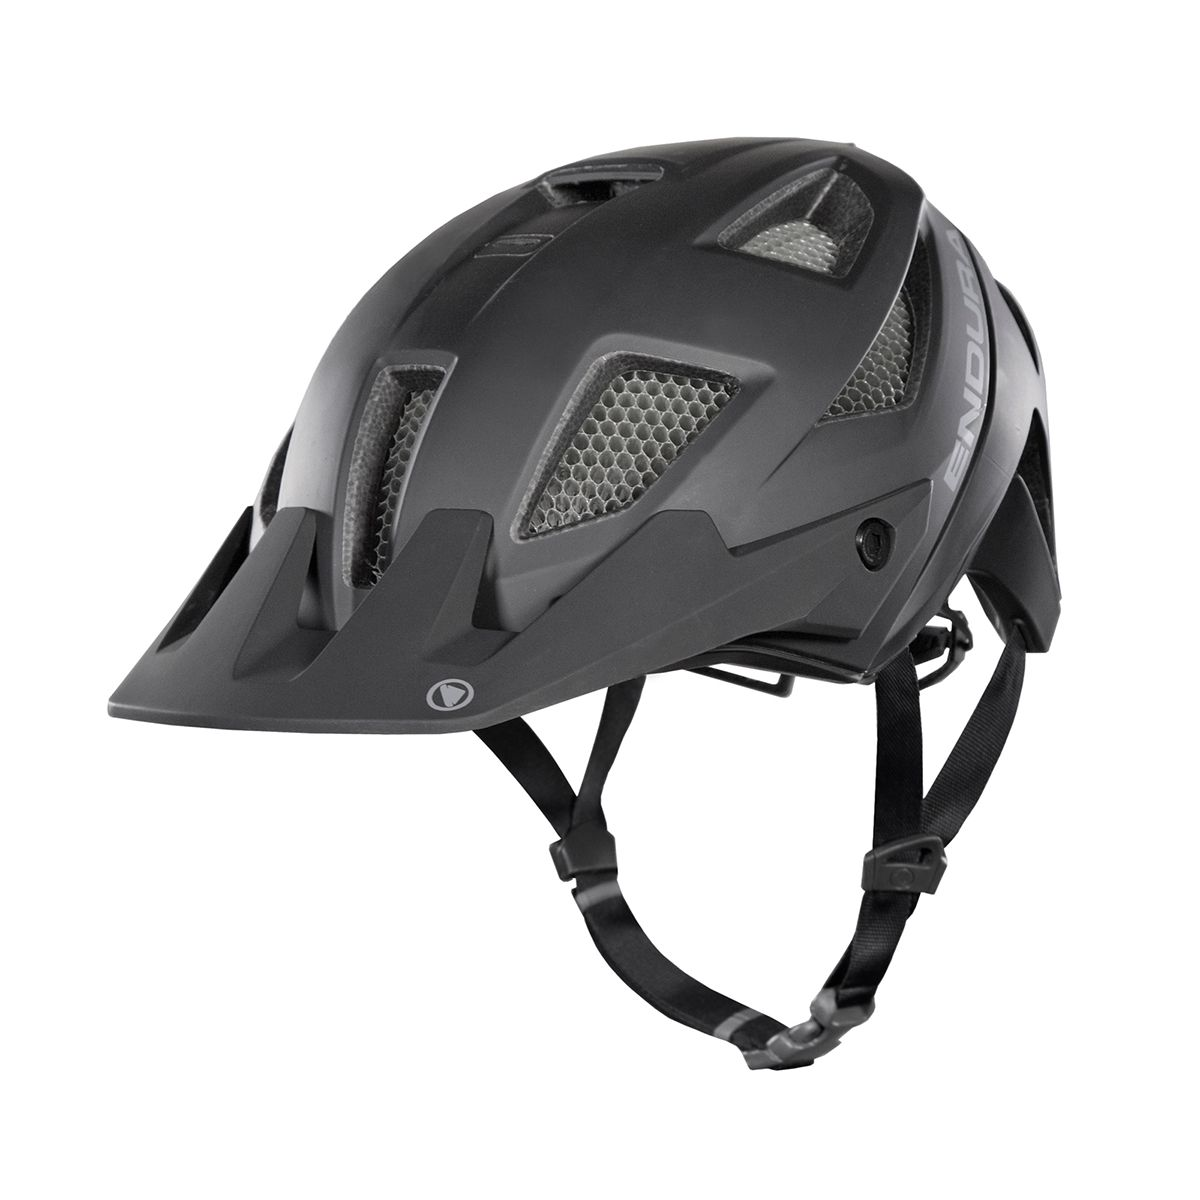 MT500 MTB helmet with KOROYD